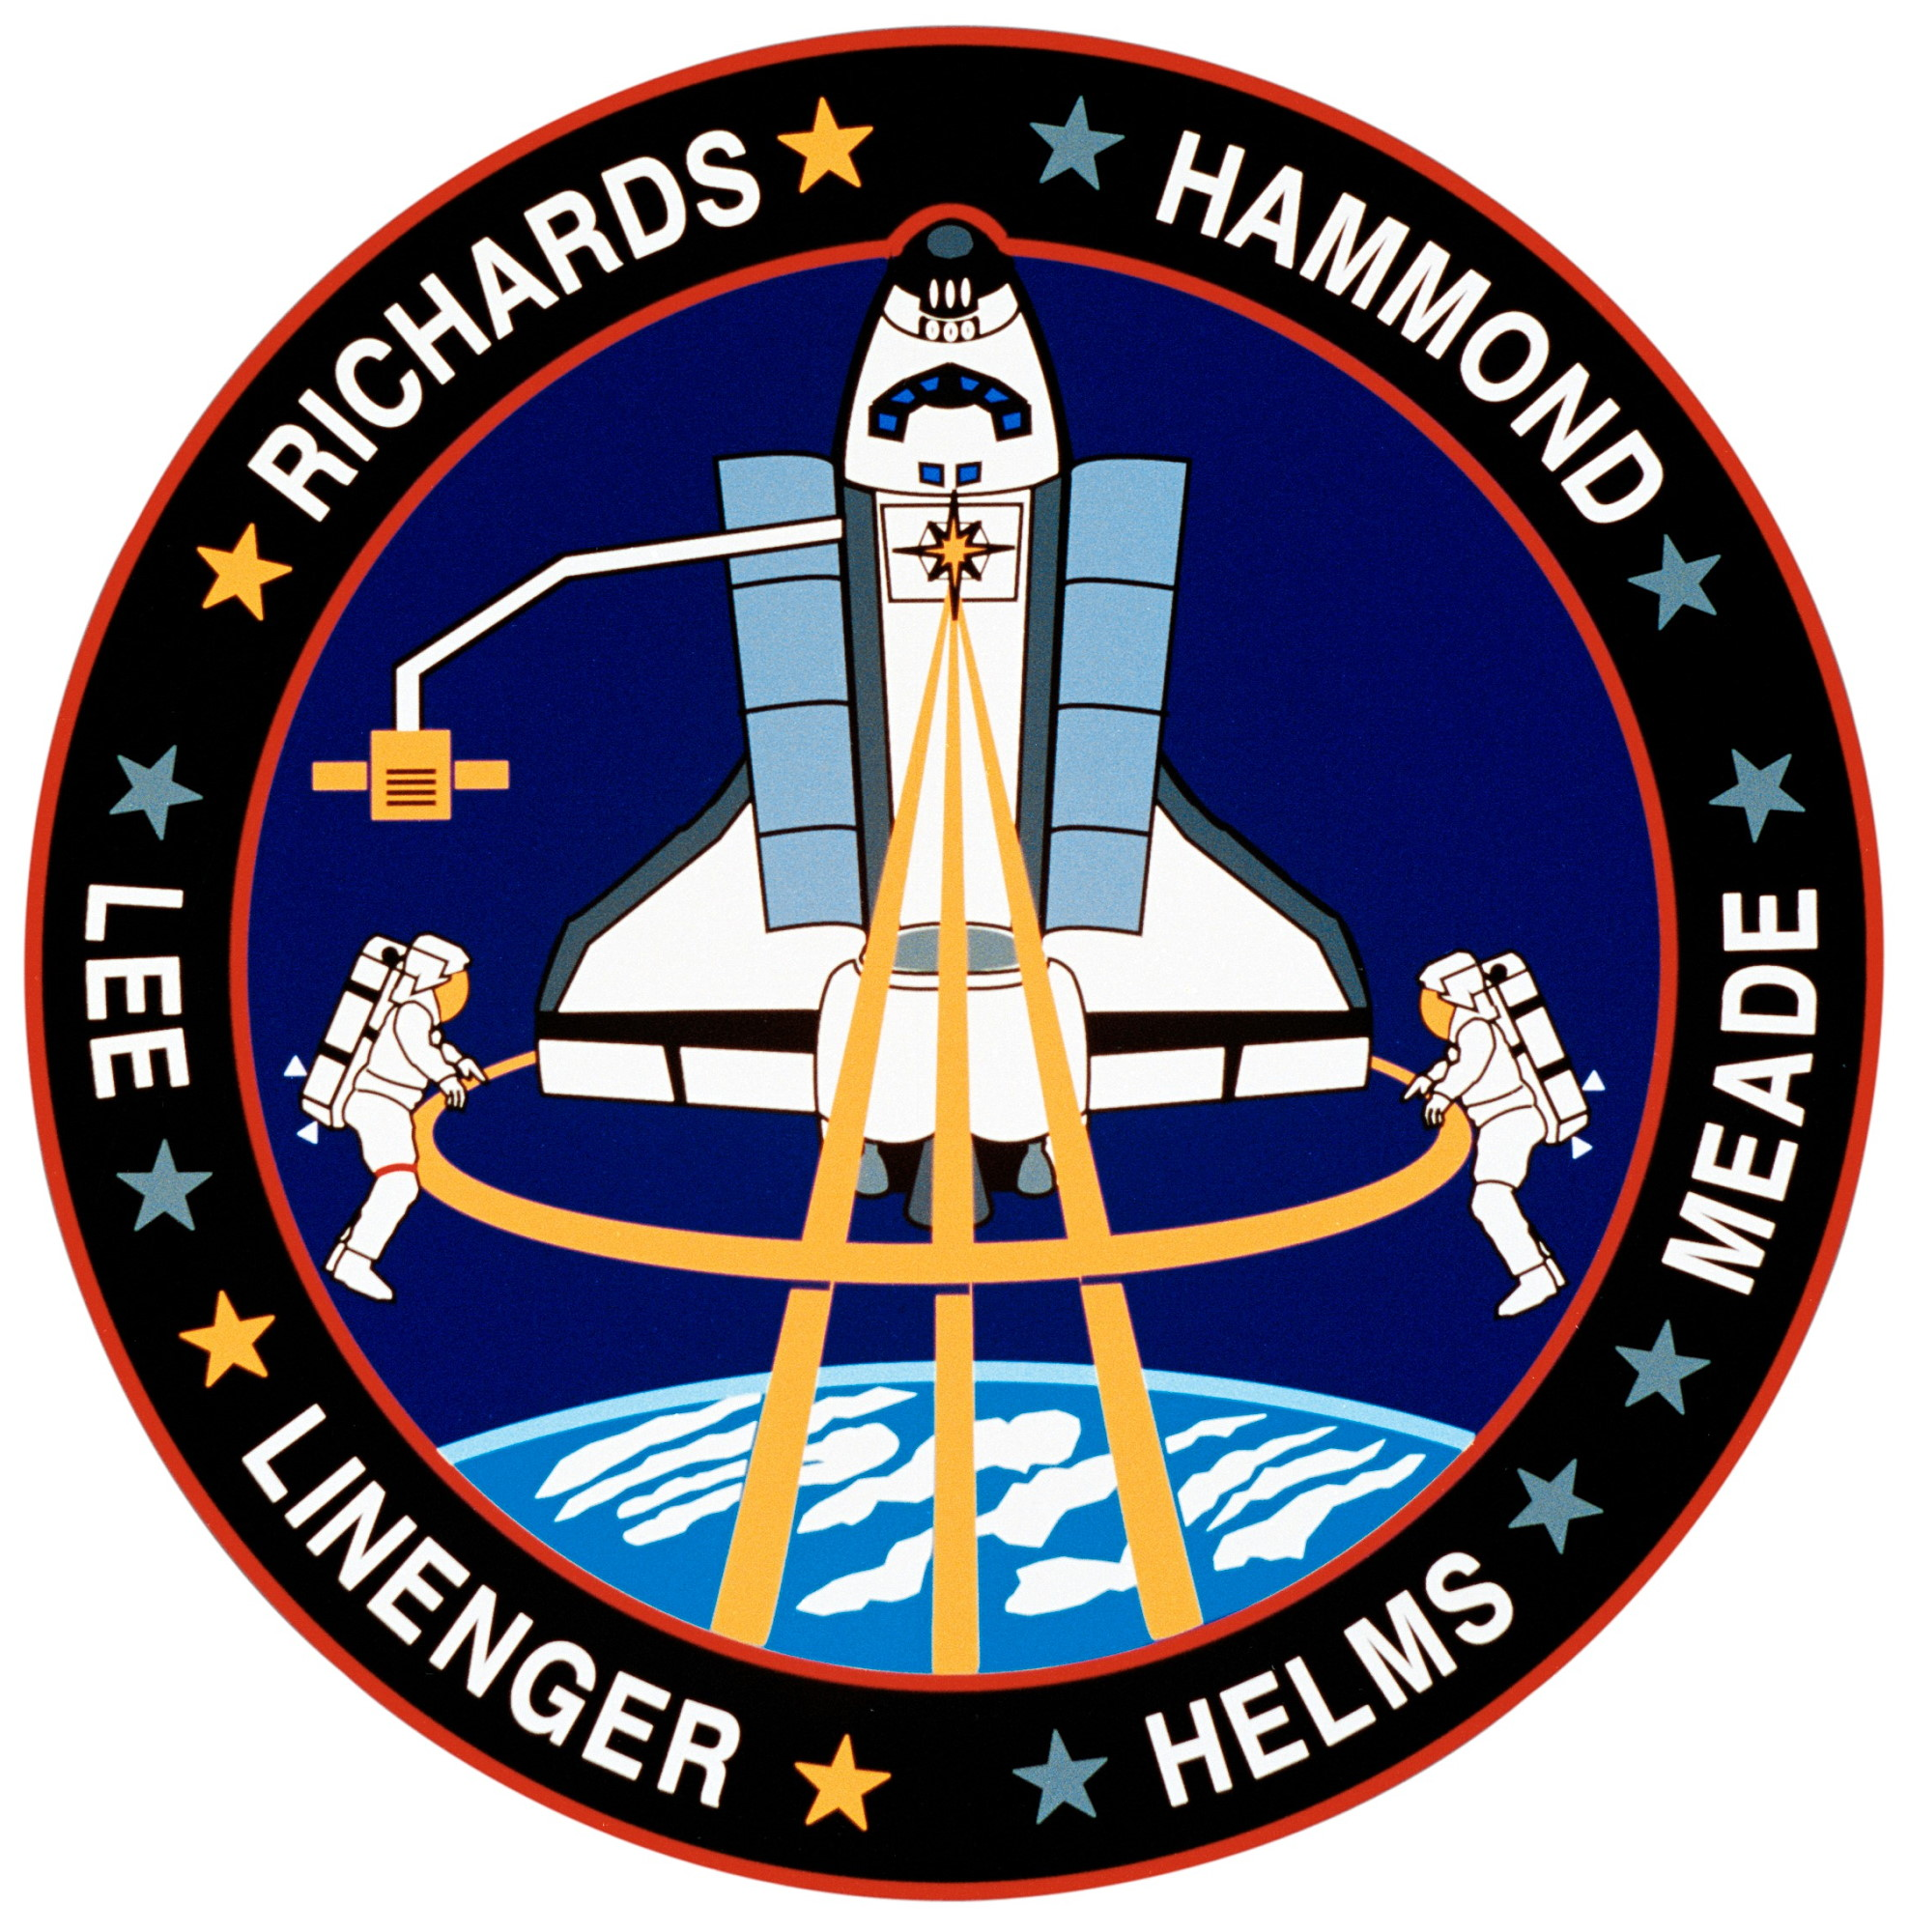 space shuttle mission logos - photo #23